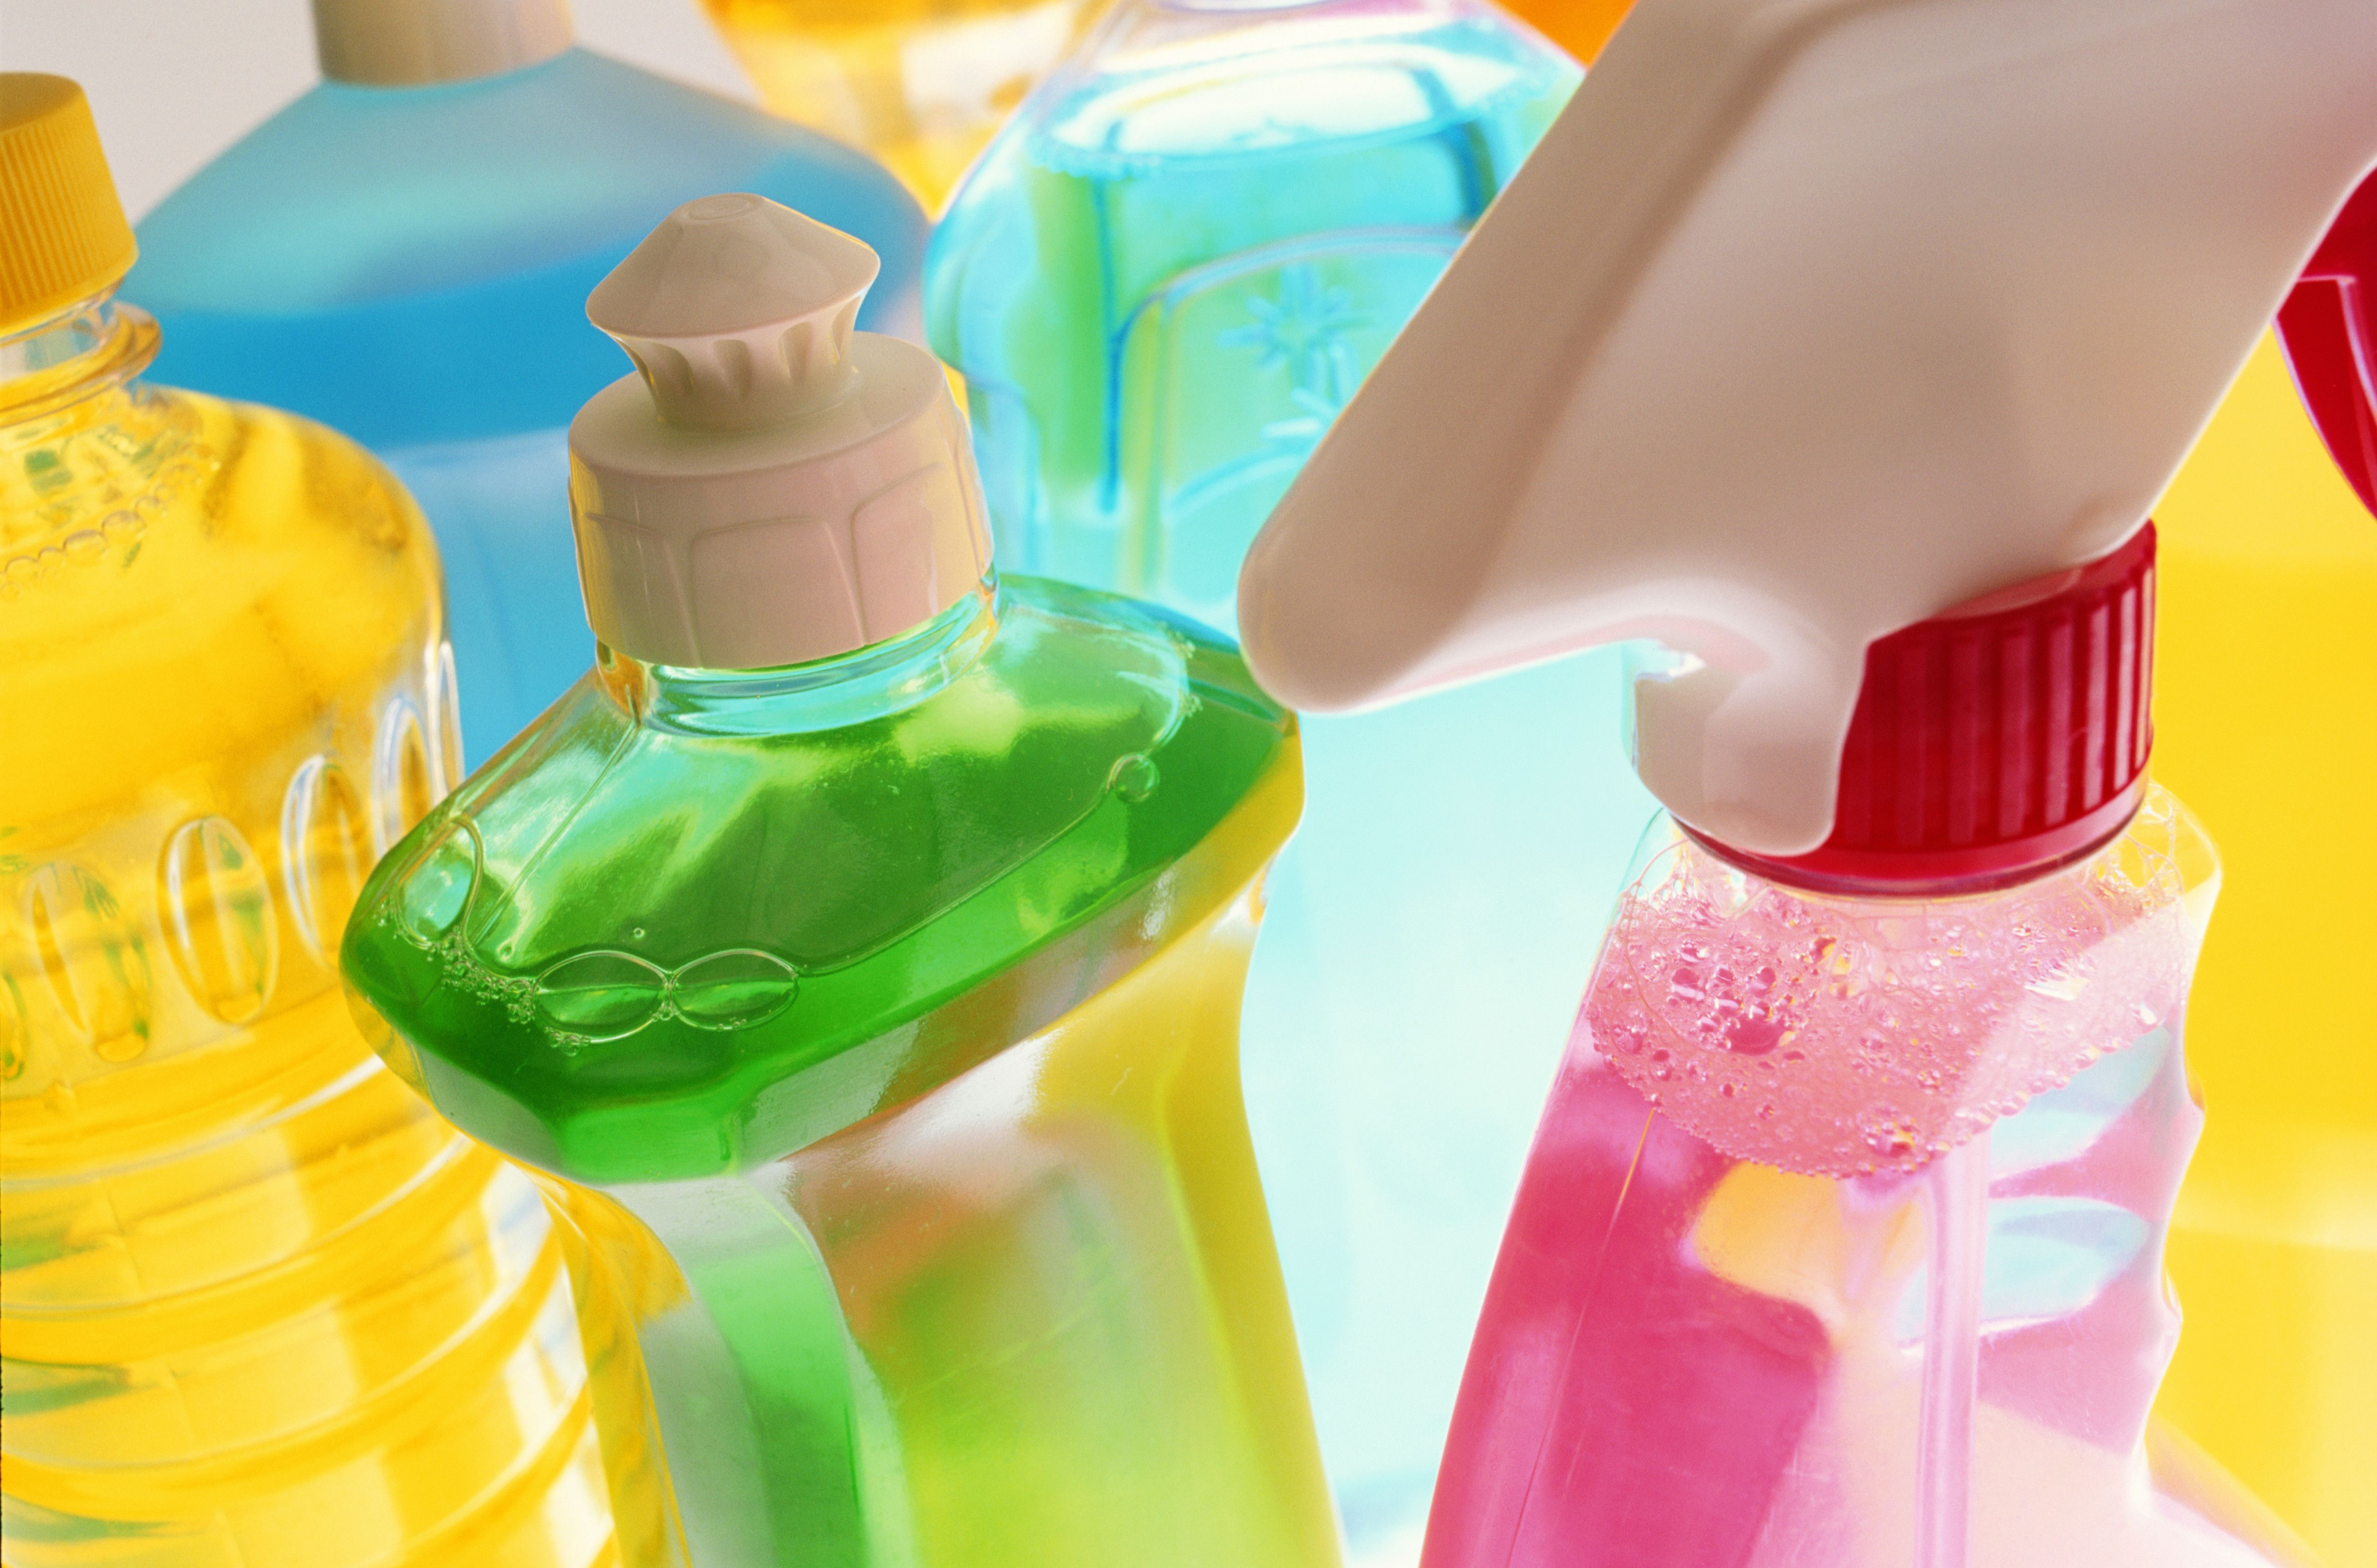 The Best Septic Safe Household Cleaning Products